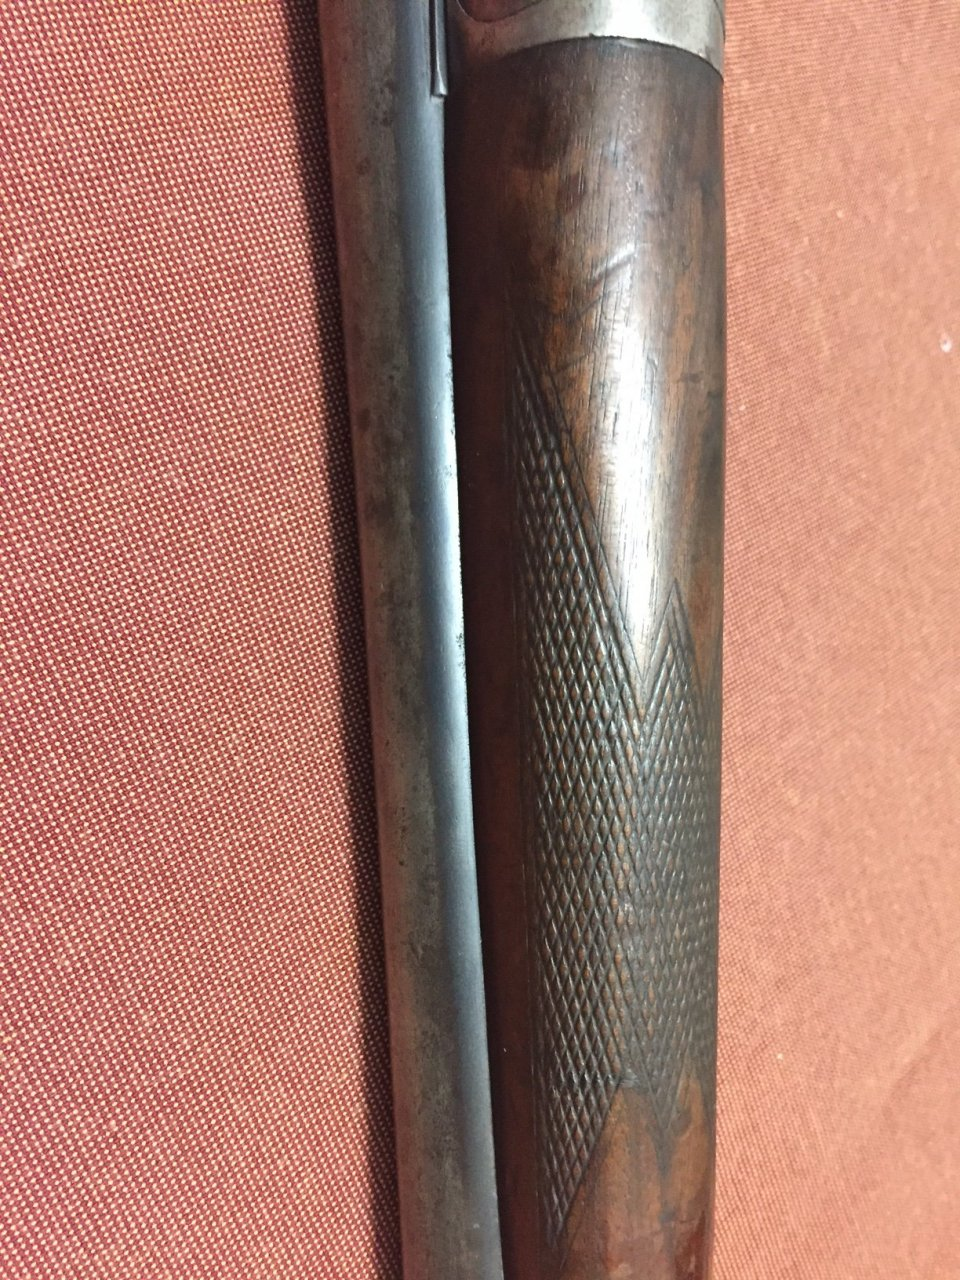 What Is The Value Of An Ithaca Double Barrel 12 Gauge